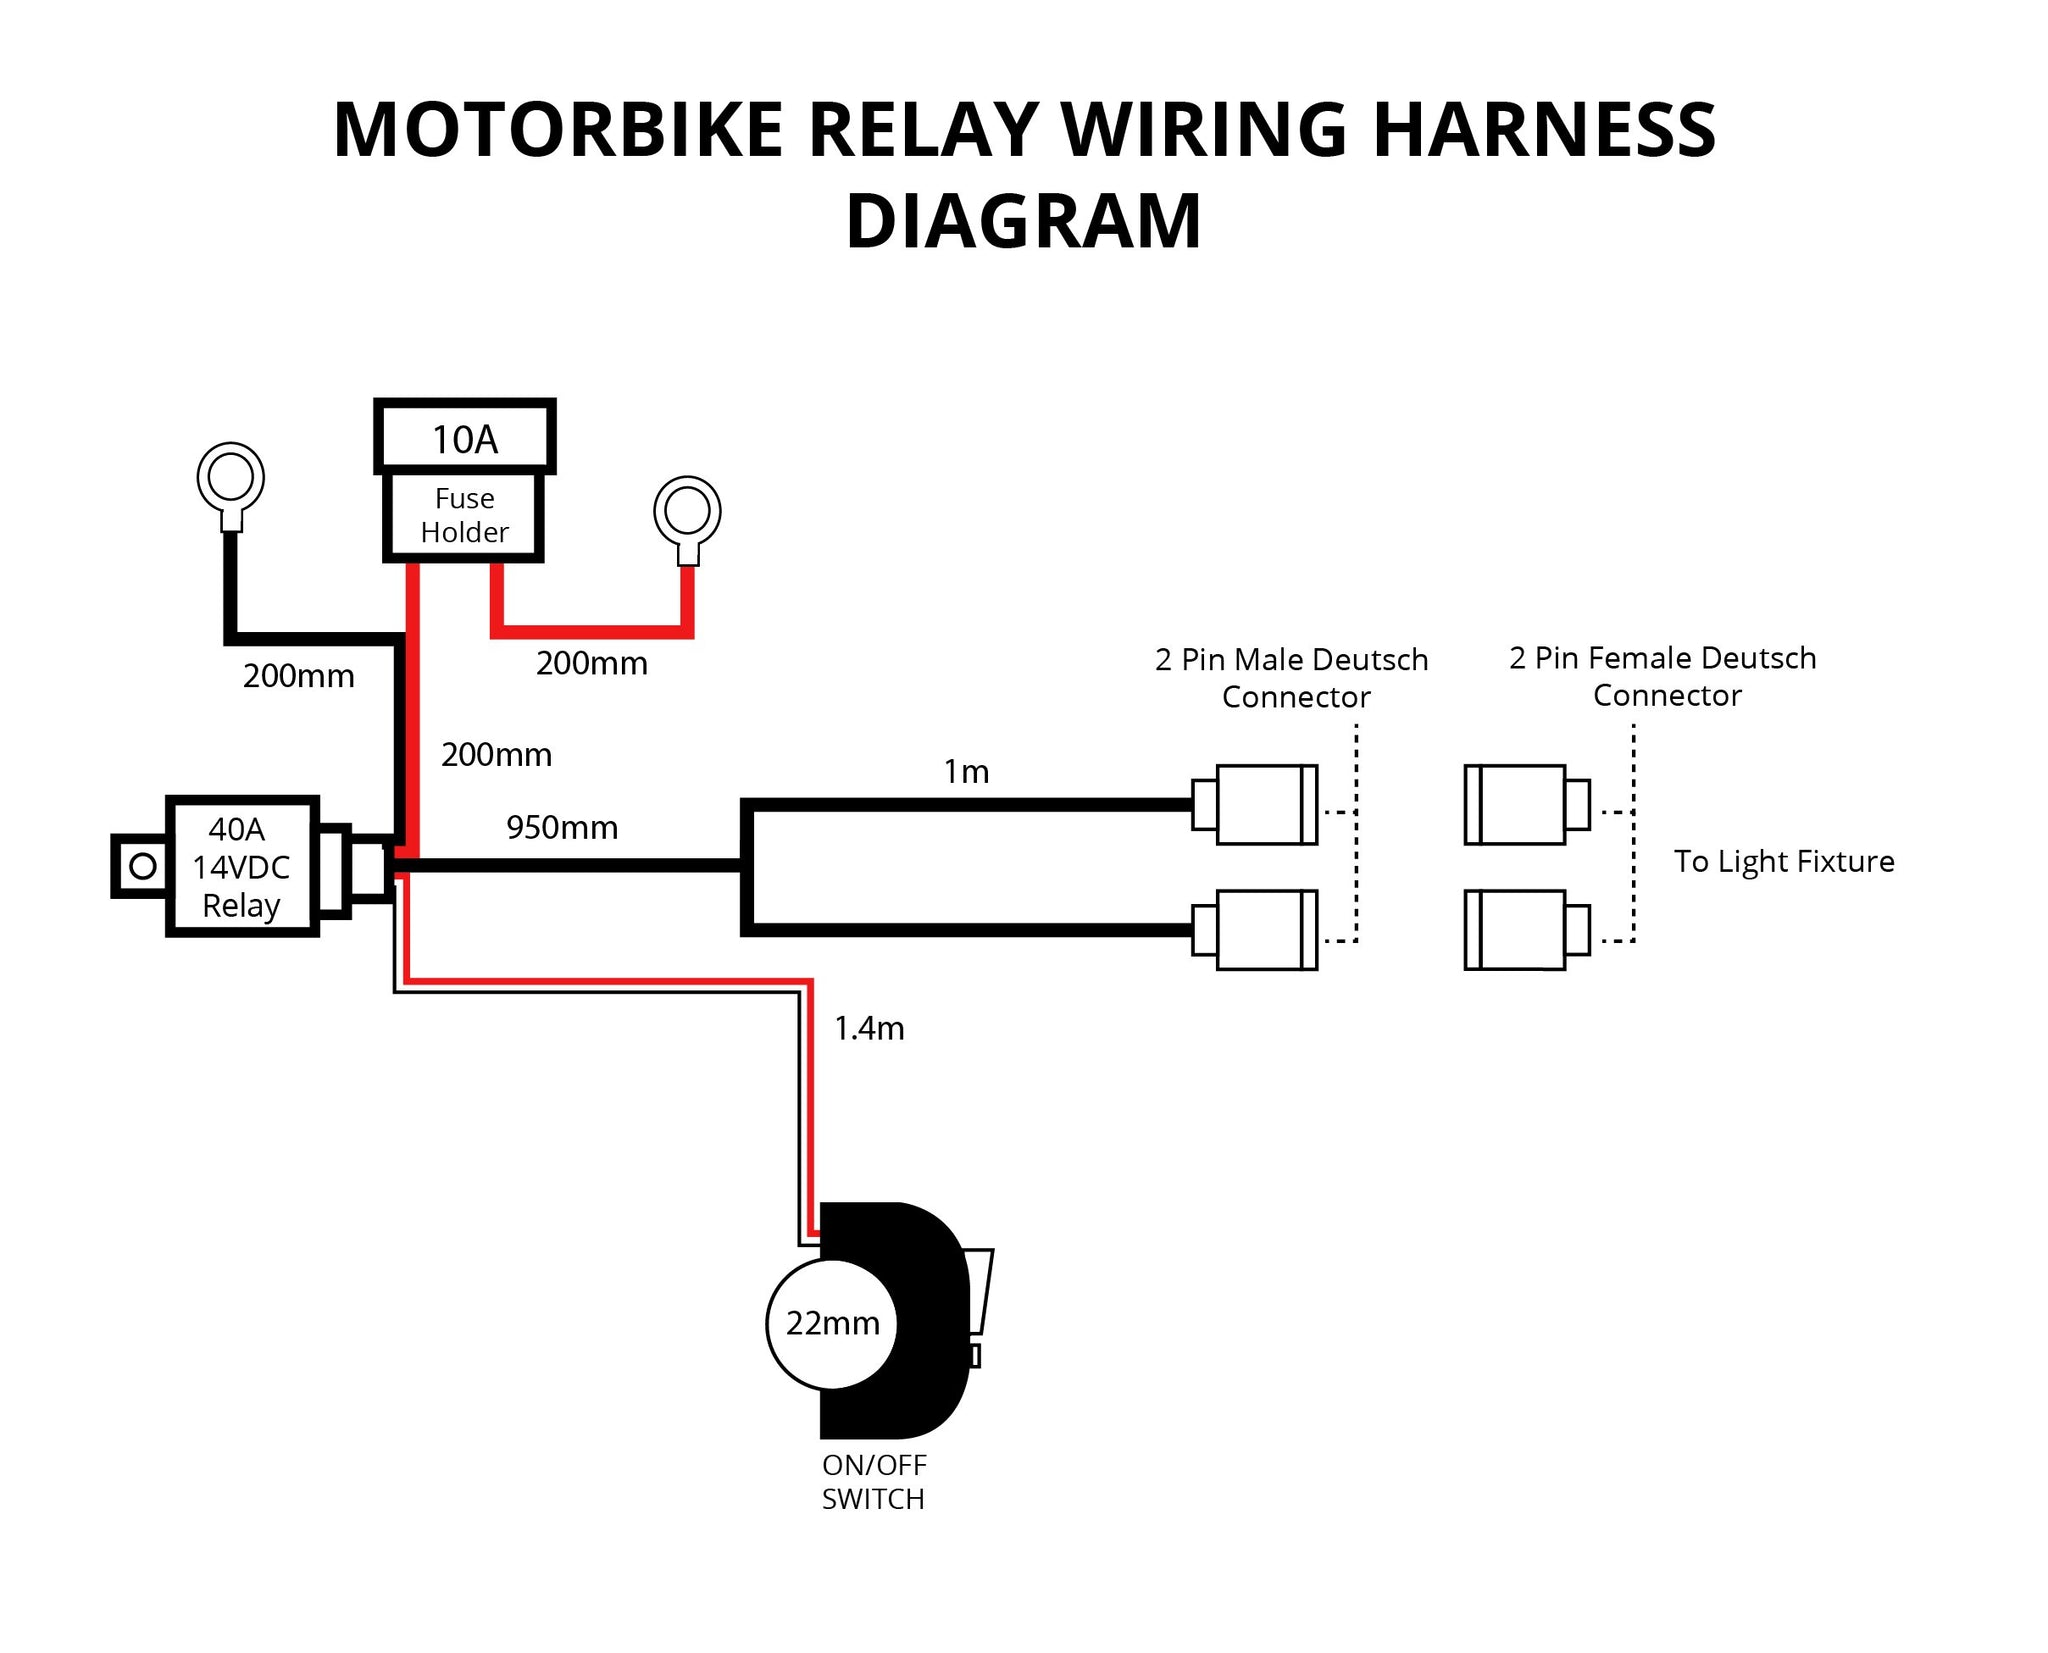 Motorbike Relay Wiring Harness For 2 X 10W Lights – Extreme LightsExtreme Lights